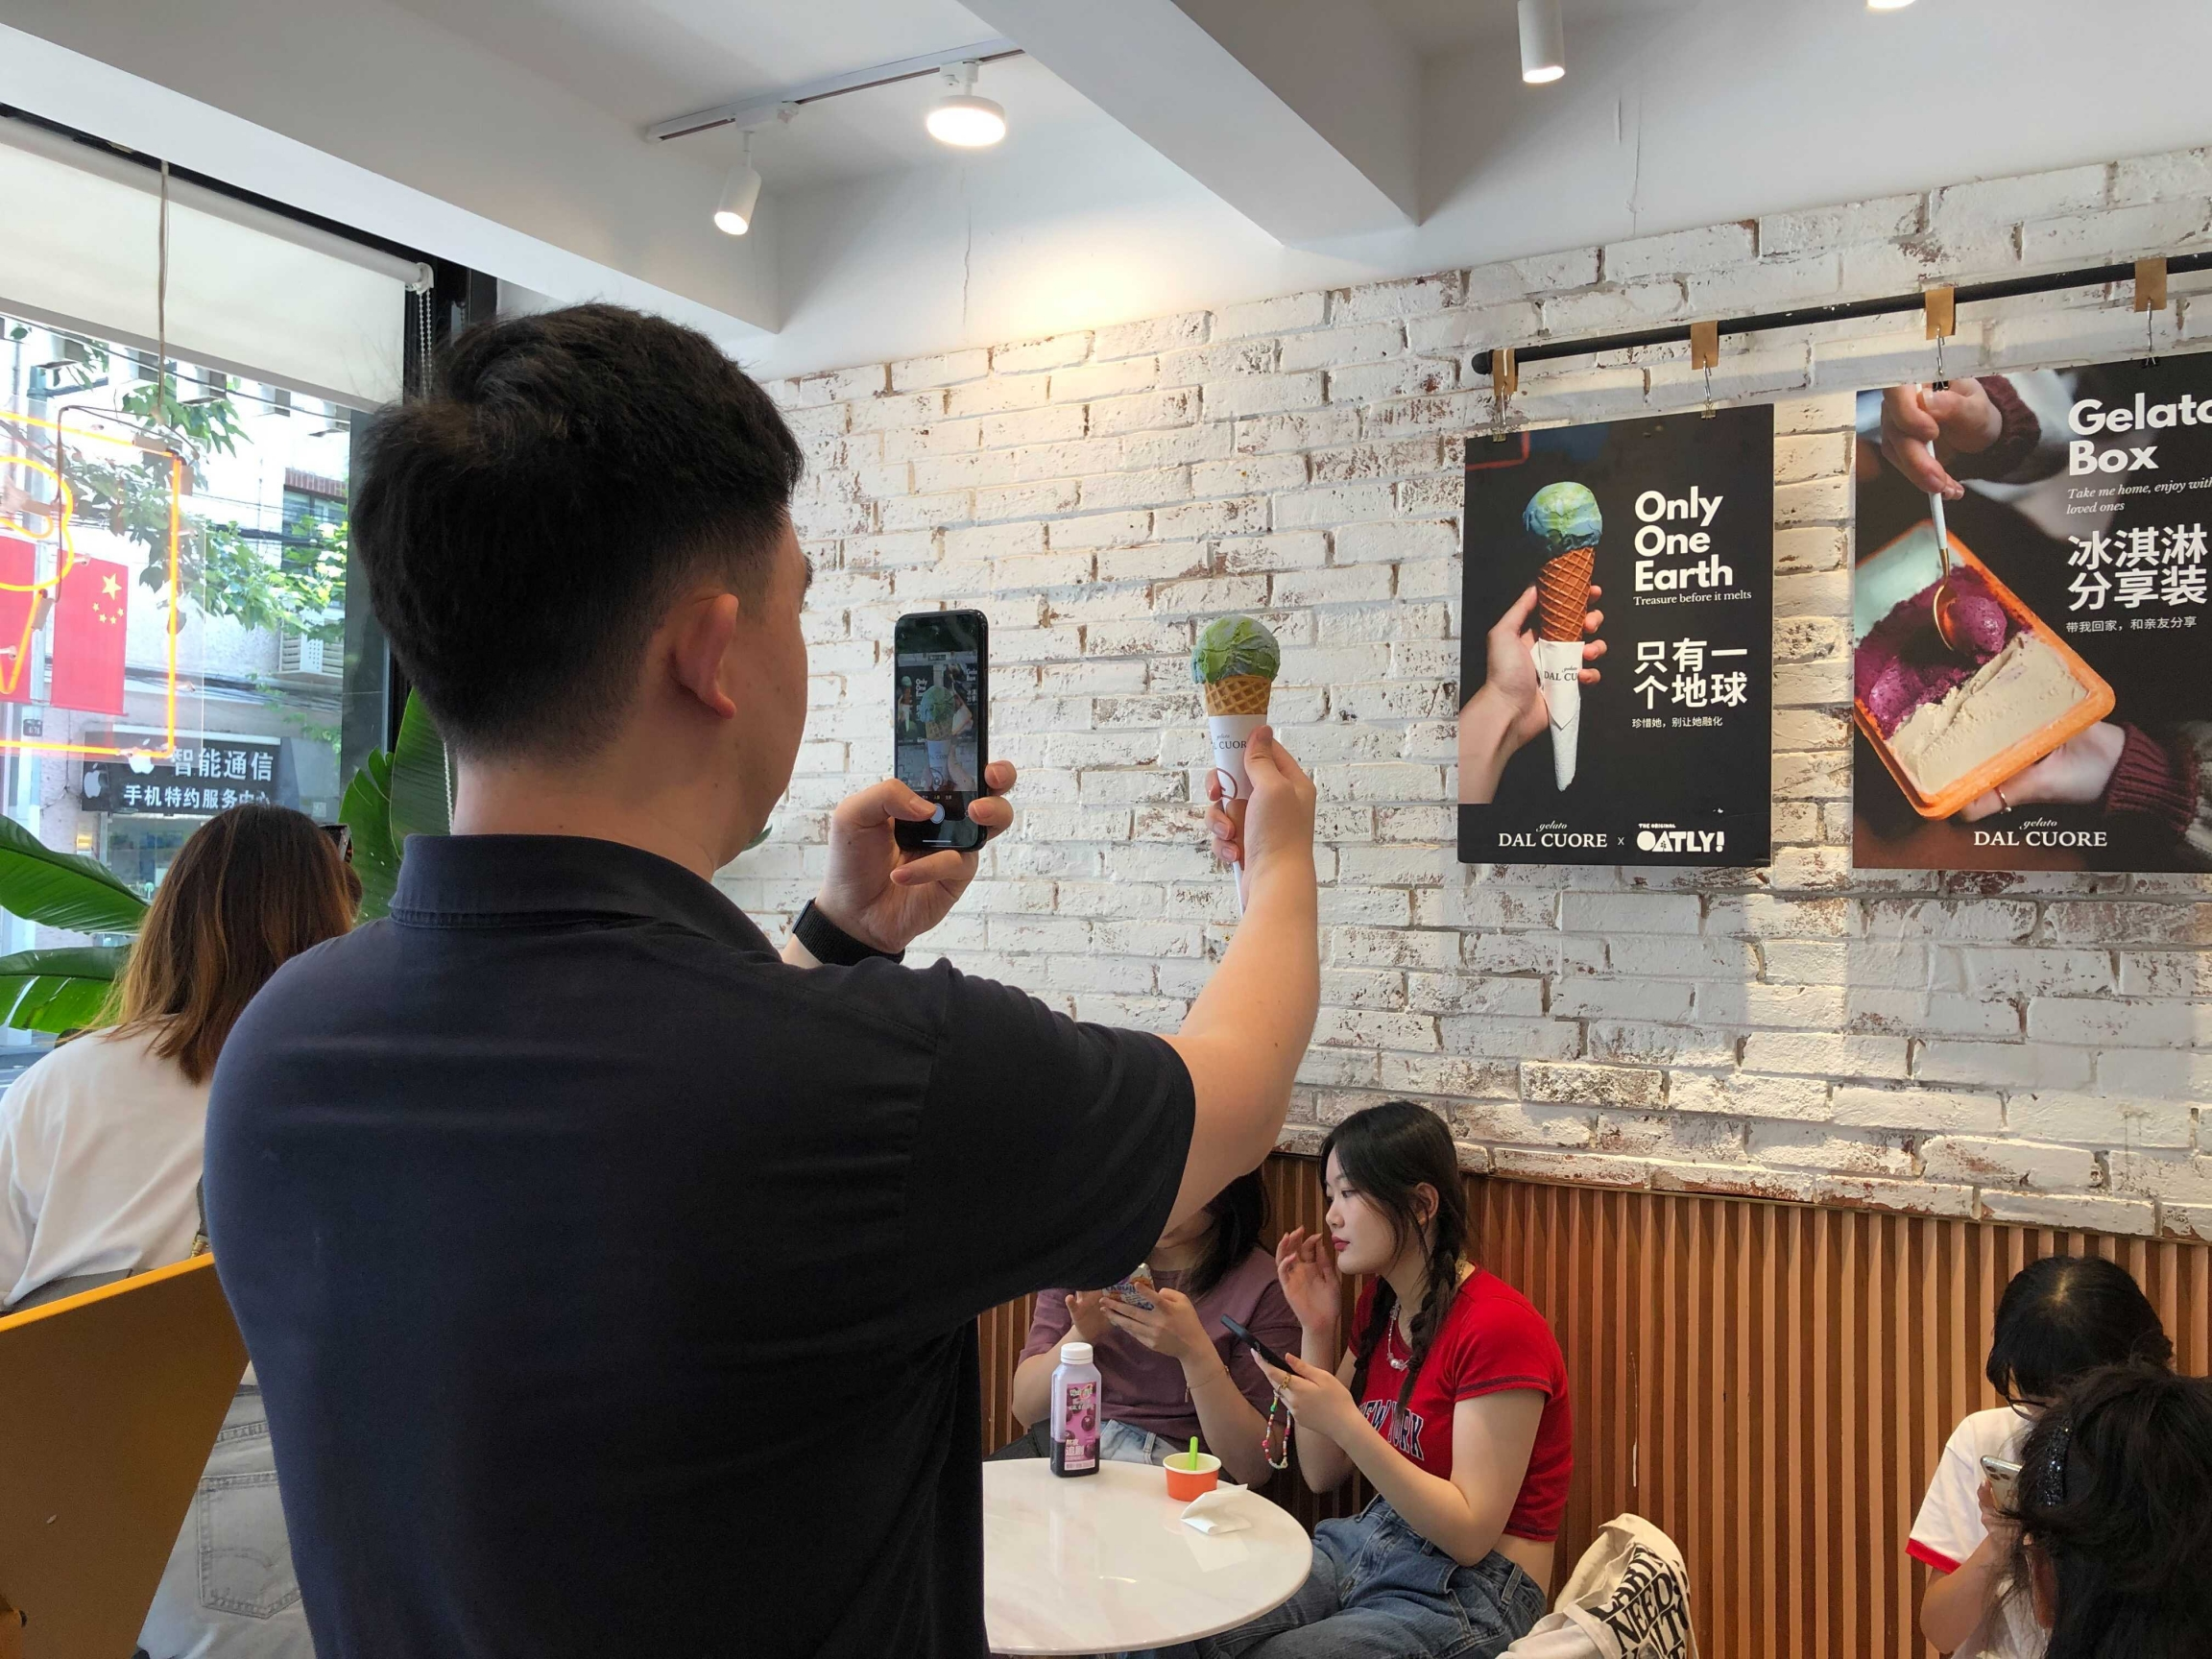 A man holds up a cone with blue and green ice cream as he takes a photo of it against a poster